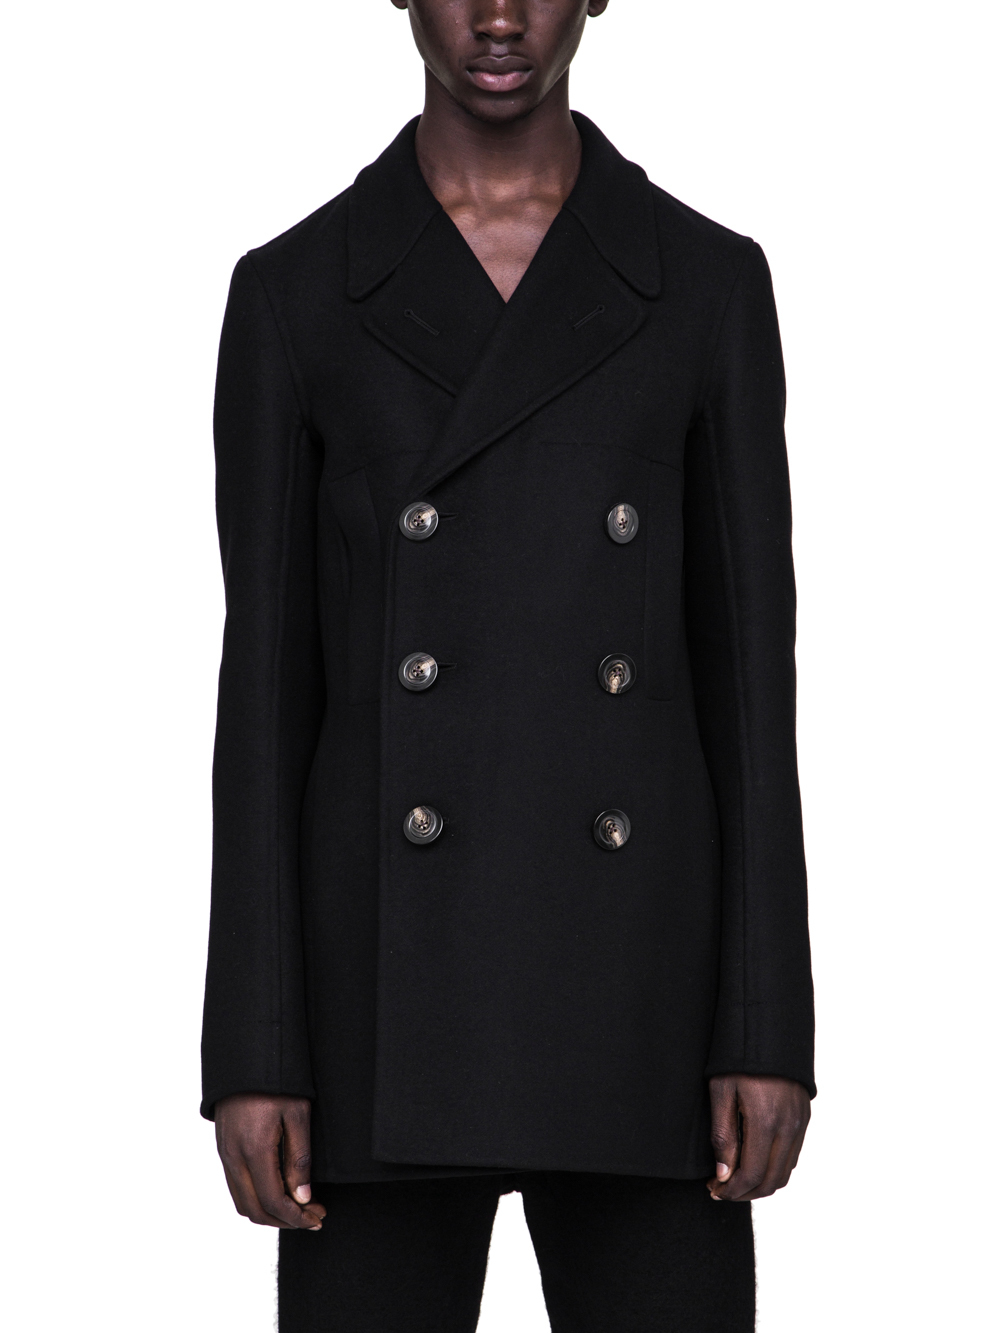 RICK OWENS FW18 SISYPHUS CHURCH PEA COAT IN BLACK DOUBLE WOOL